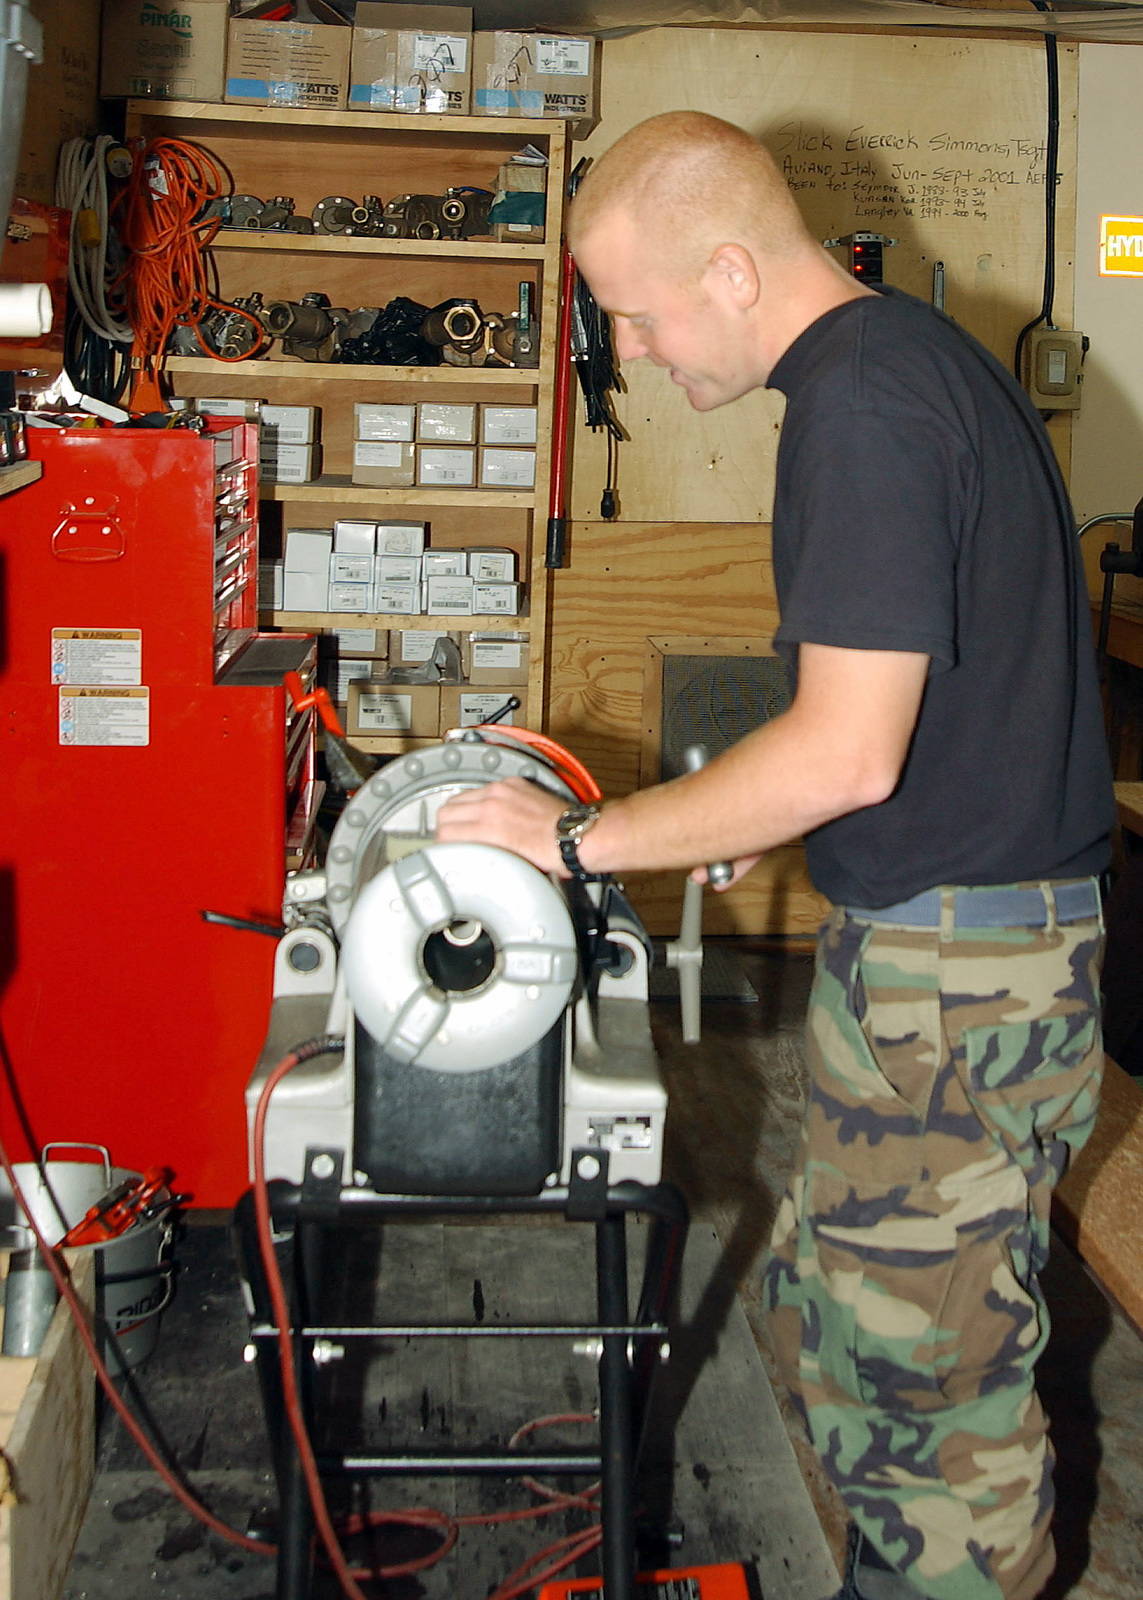 US Air Force (USAF) AIRMAN First Class (A1C) Sean McNeil threads a pipe in the deployed Plumbing shop at Incirlik Air Base, Turkey in support of Operation NORTHERN WATCH